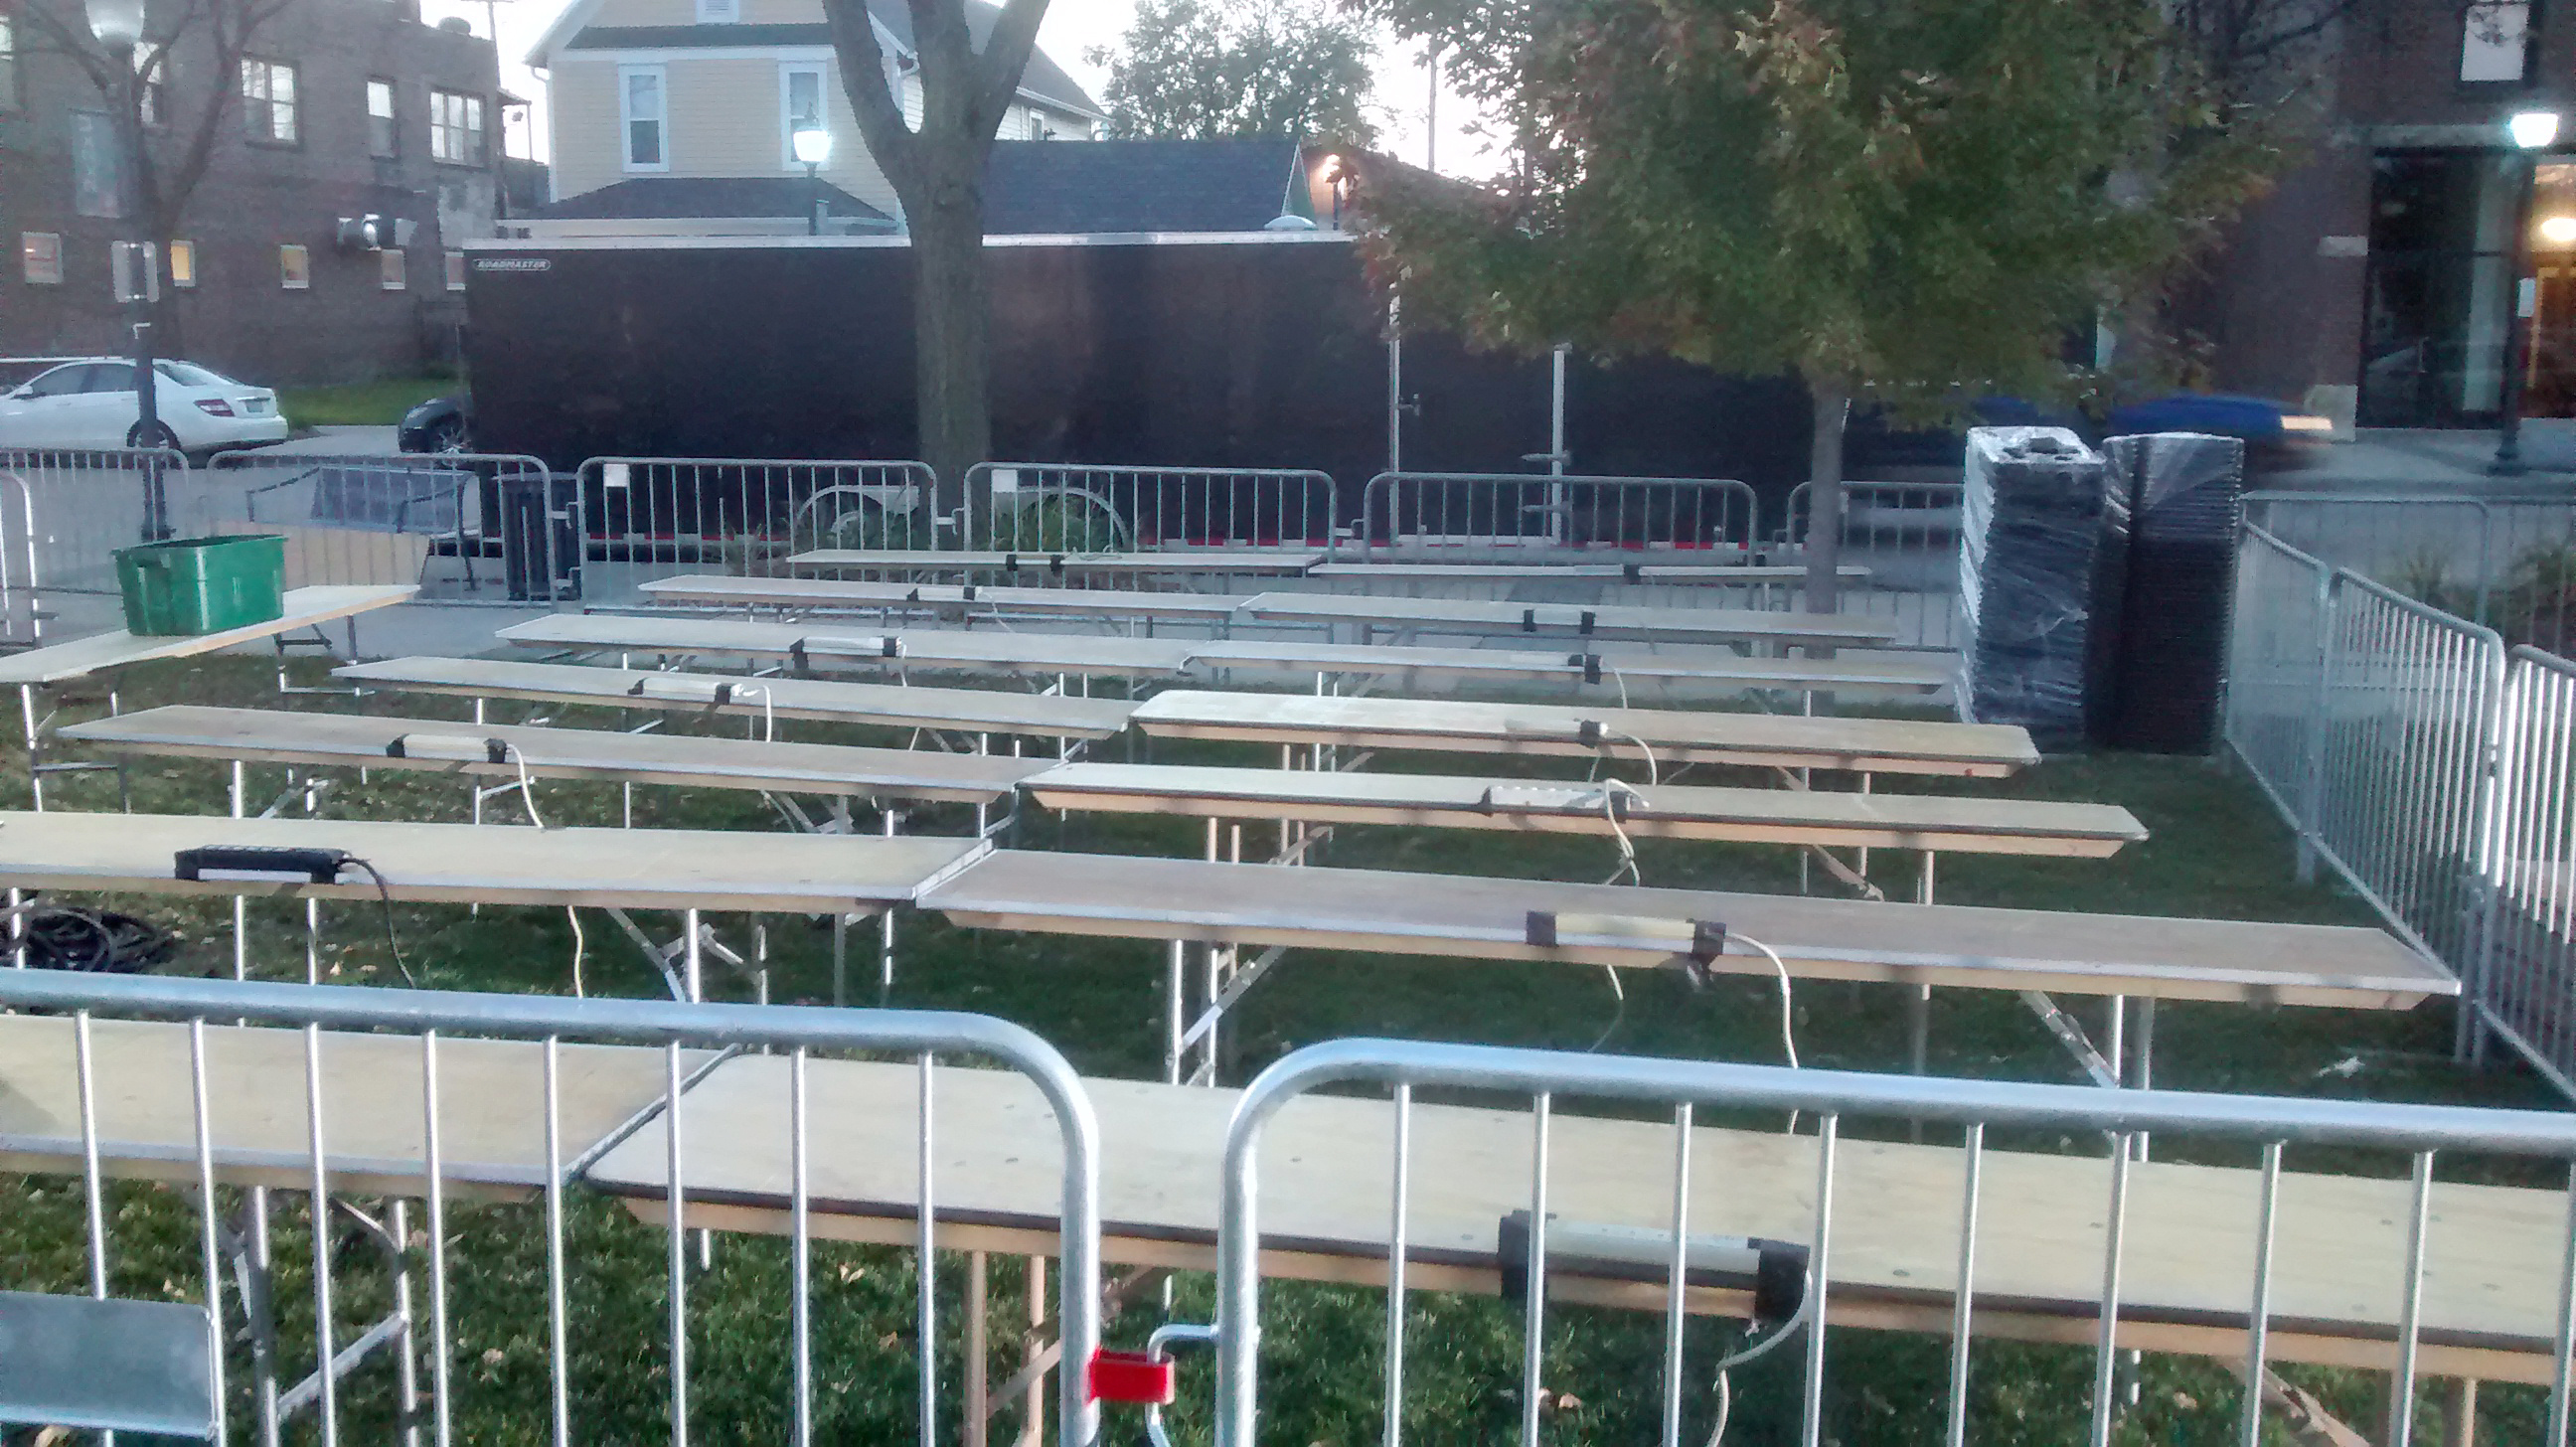 Press box with chairs, tables, barricade for the Hillary Clinton political rally at NewBo City Market in Cedar Rapids, Iowa